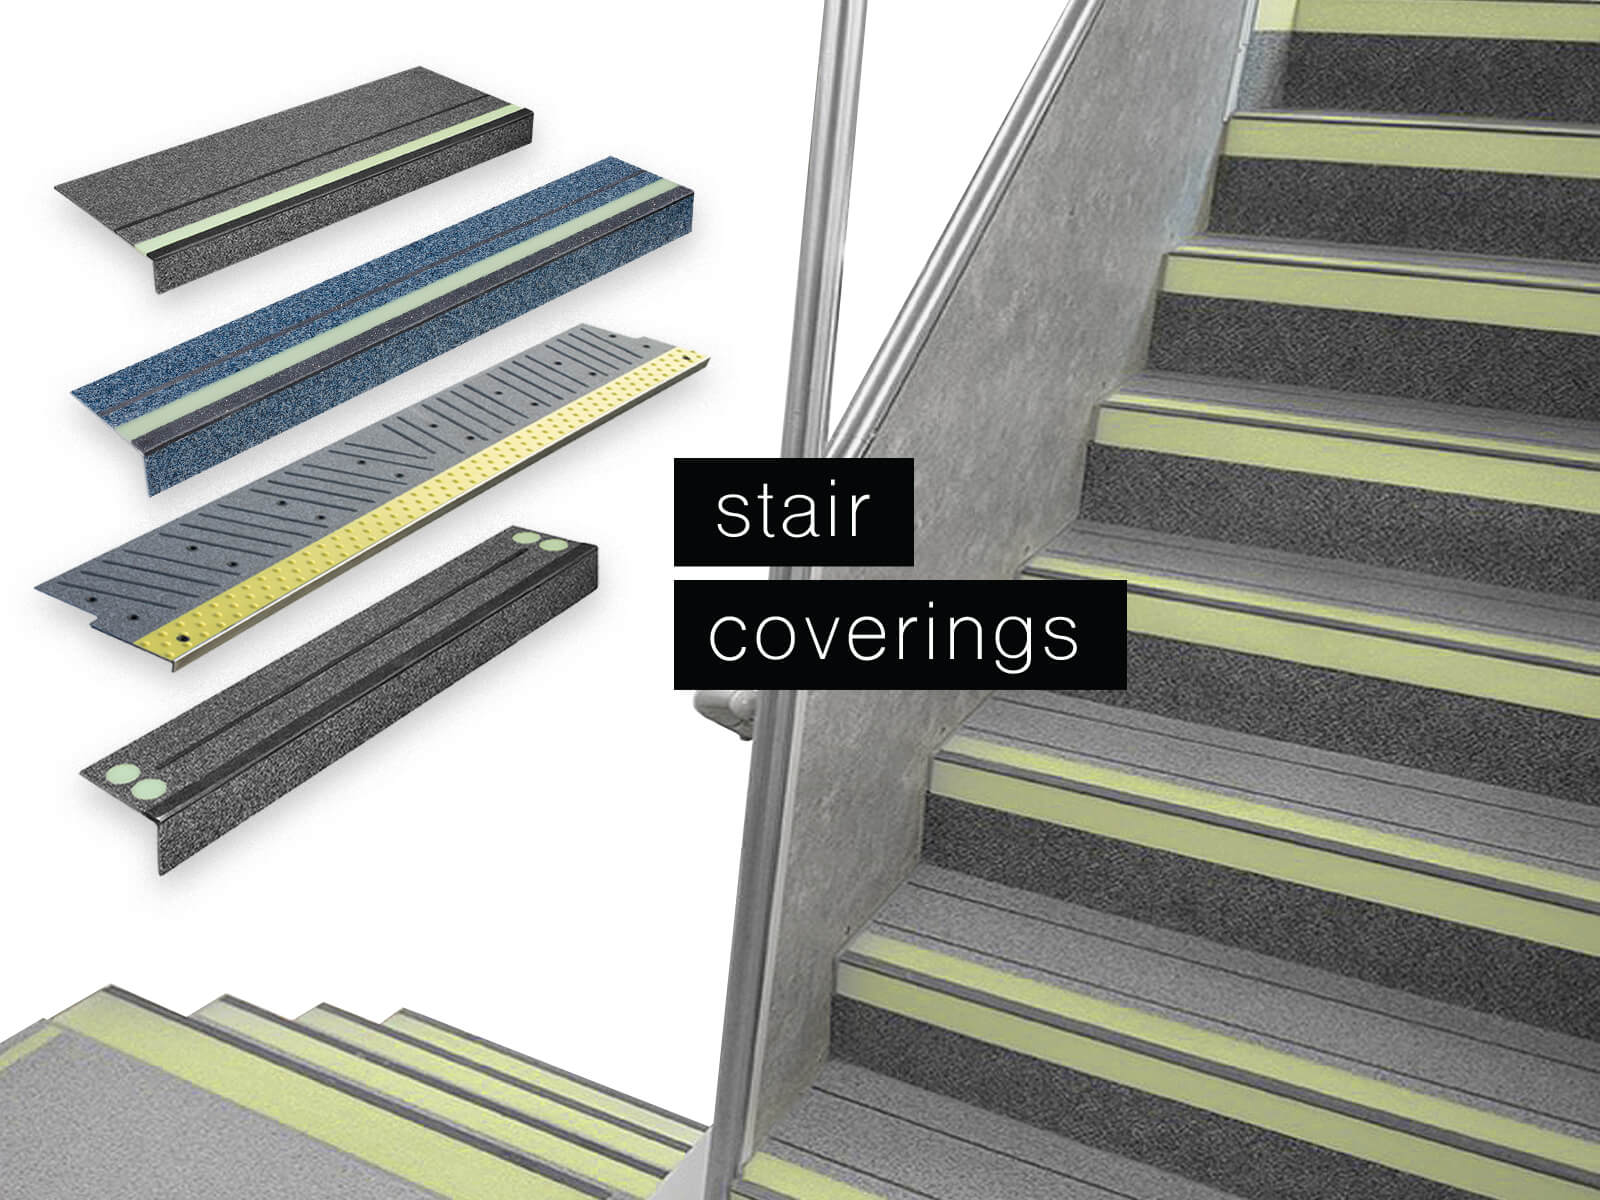 Baultar's Vehicle Stair Coverings